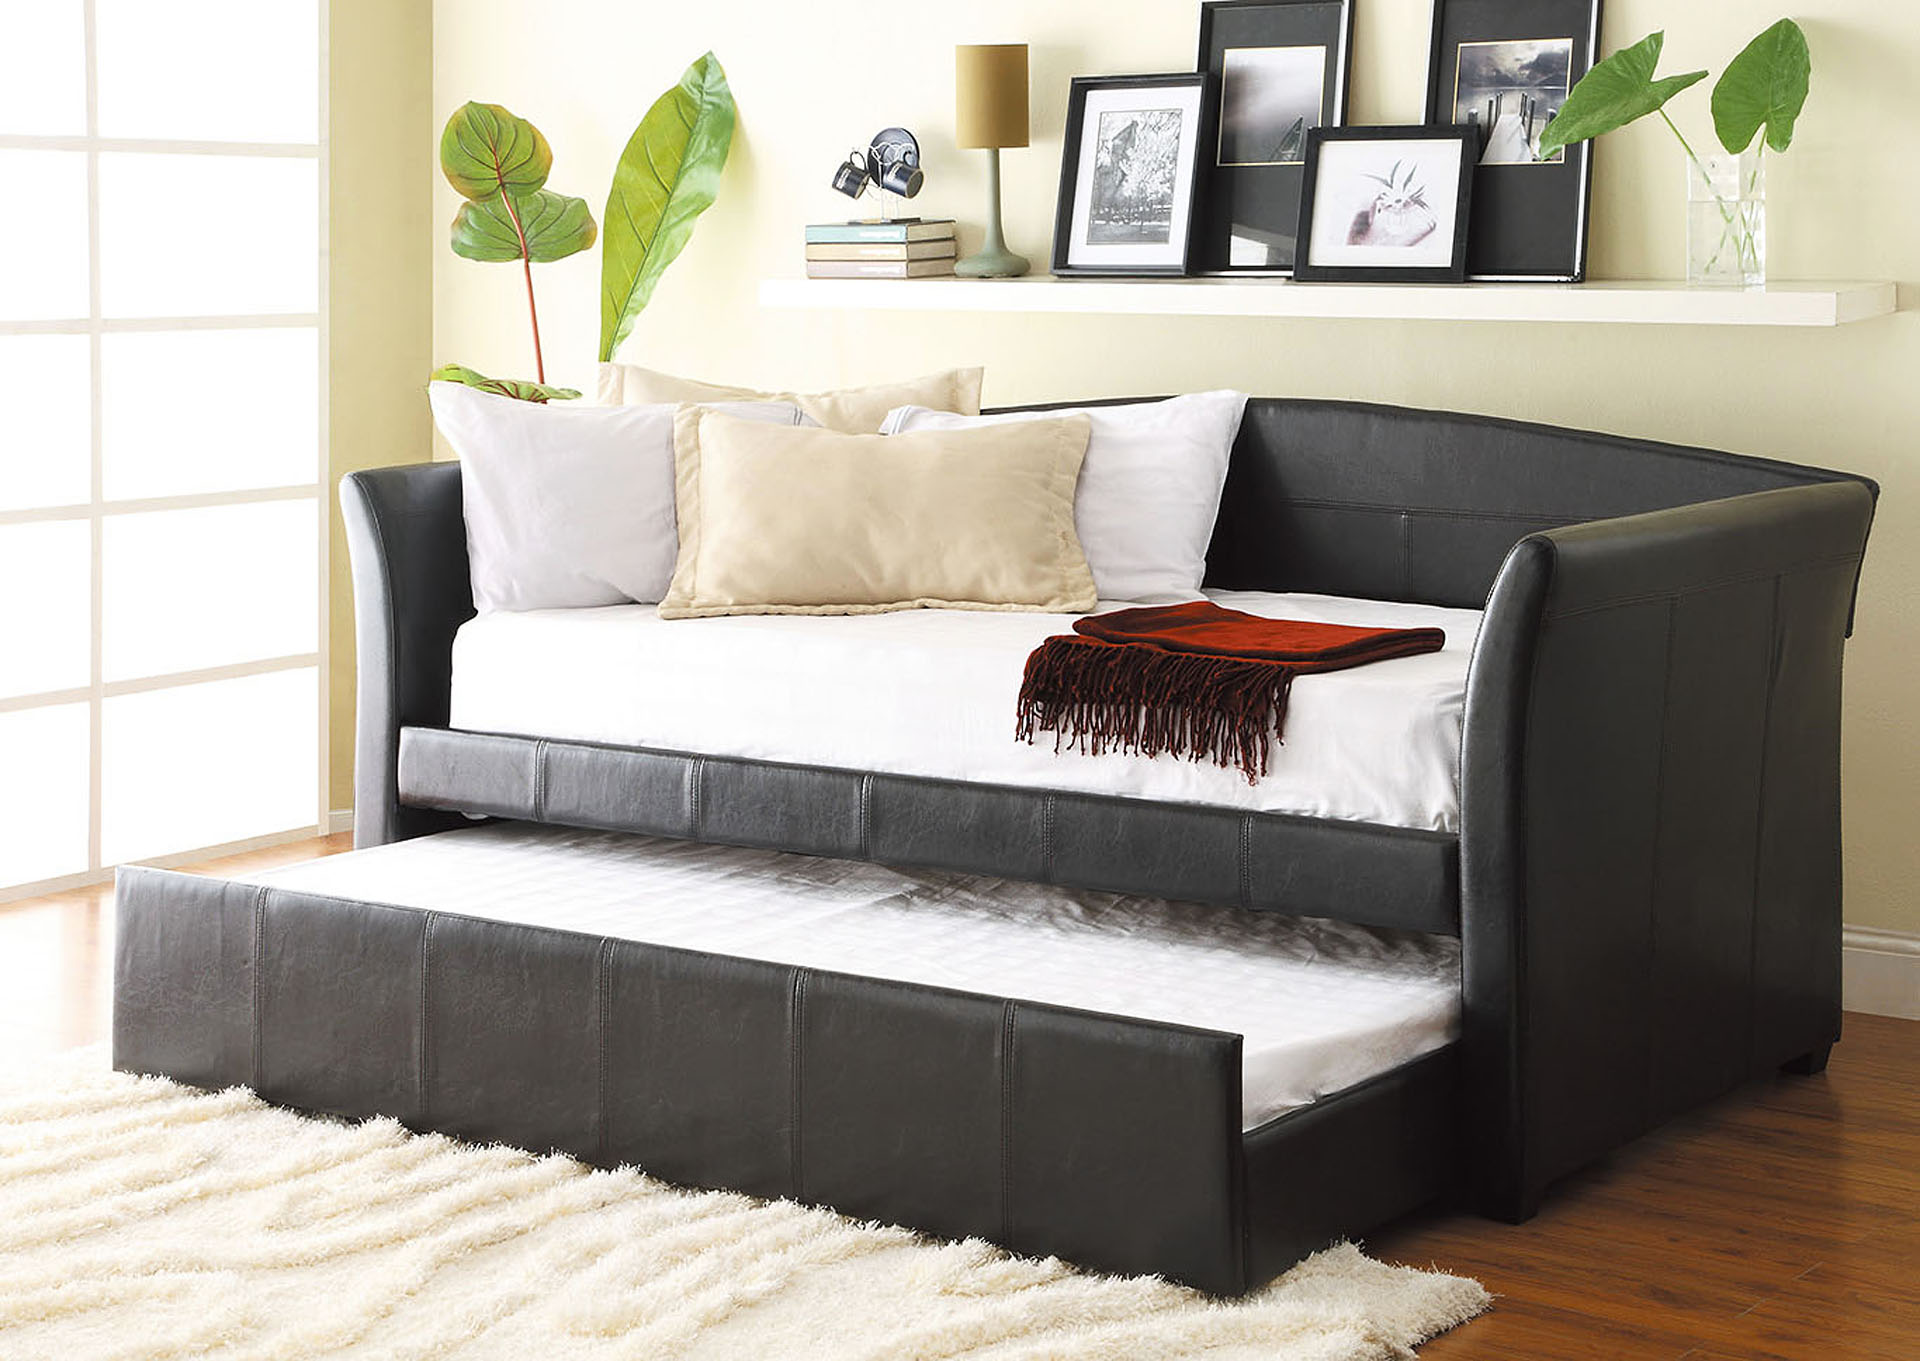 Meyer Dark Brown Daybed w/Arms,Homelegance